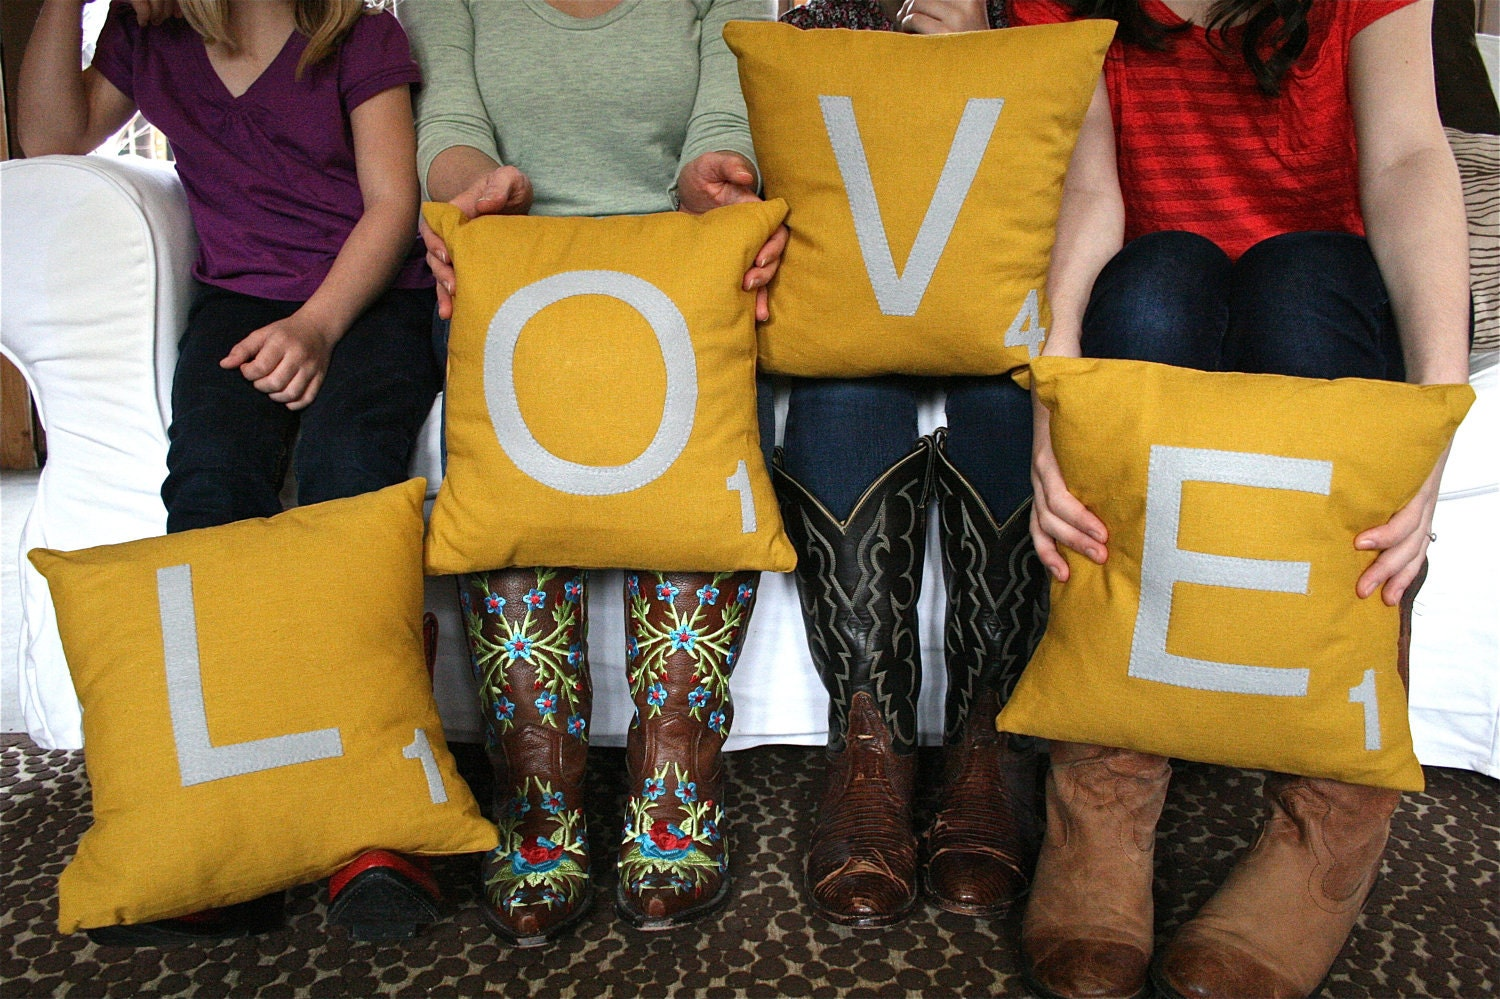 LOVE Scrabble Pillows